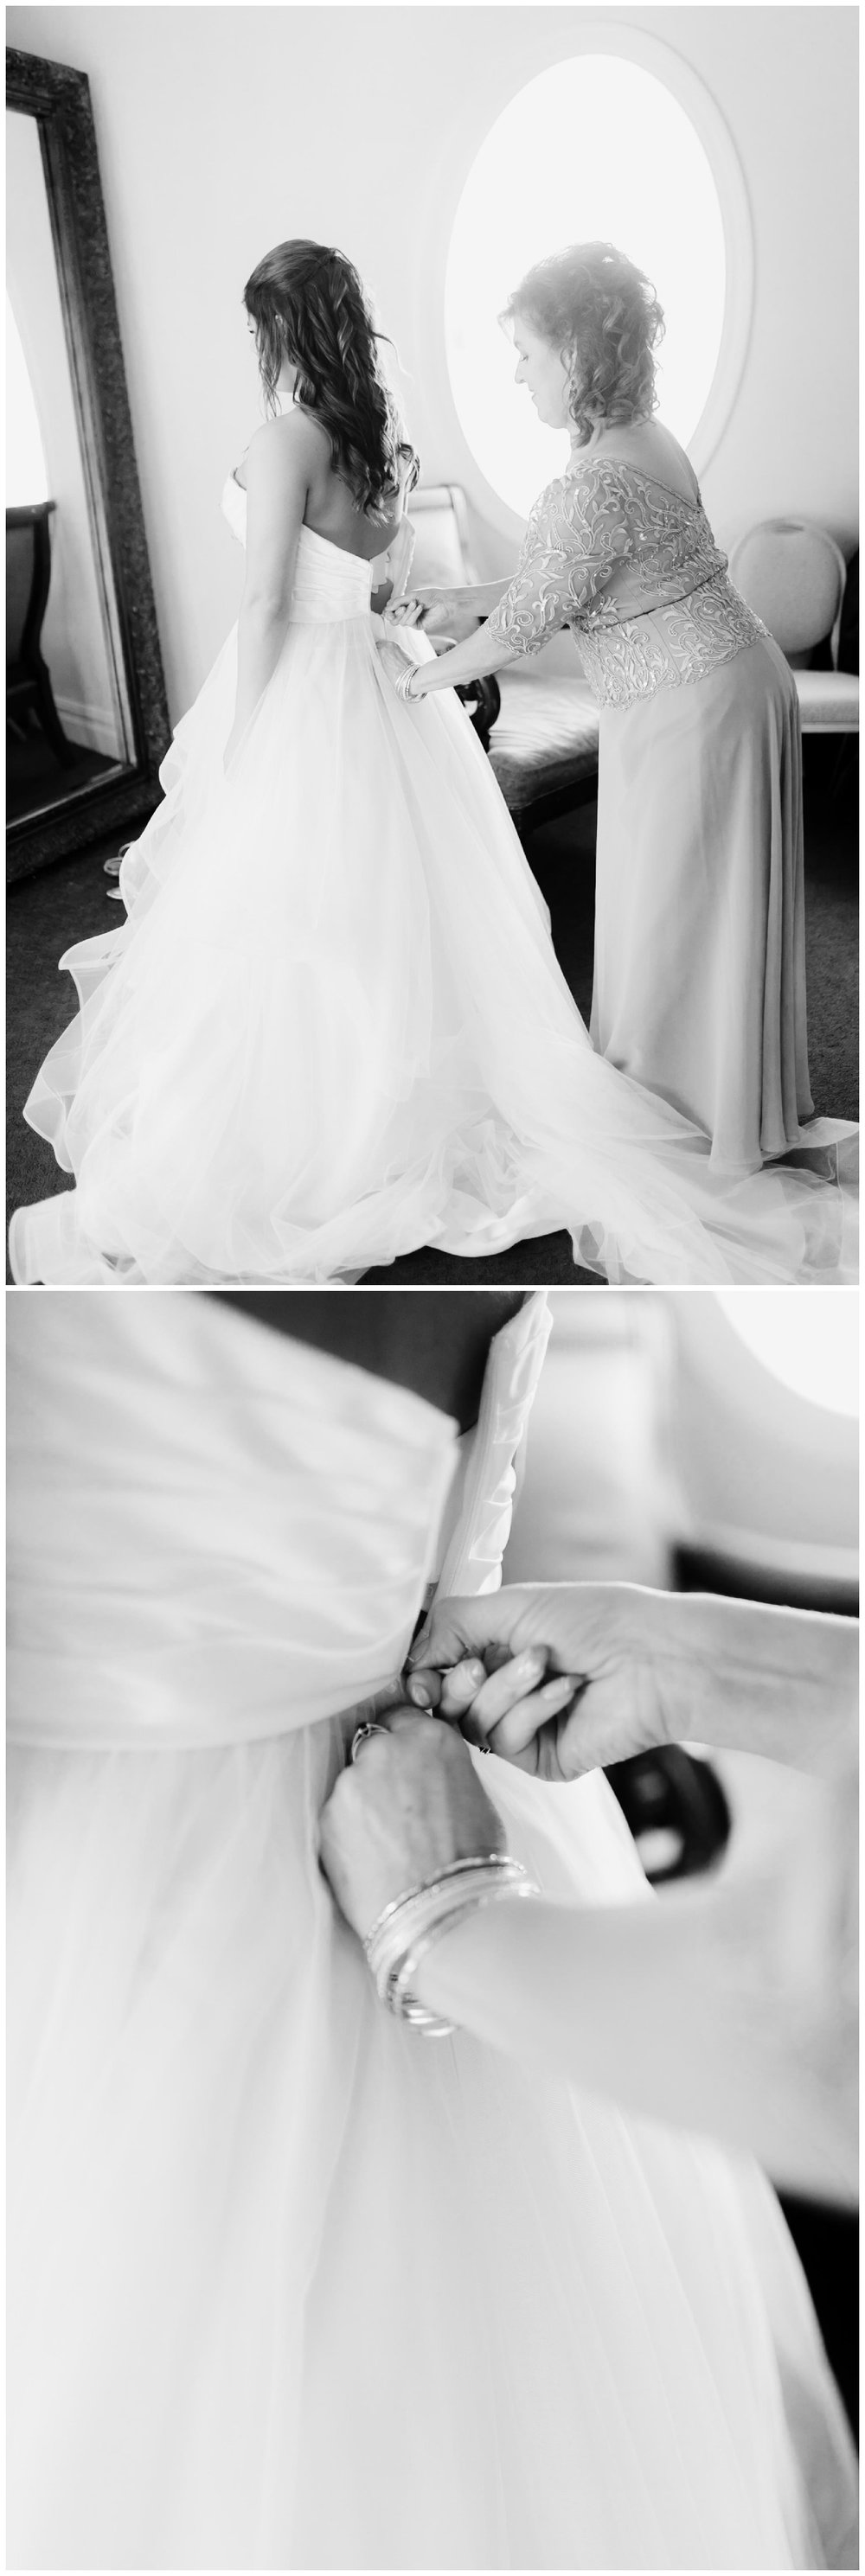 JenandEd_NewJerseyWedding_CarriageHouse_Galloway_NJ__SouthJersey_Wedding_Photographer_MagdalenaStudios_0251.jpg